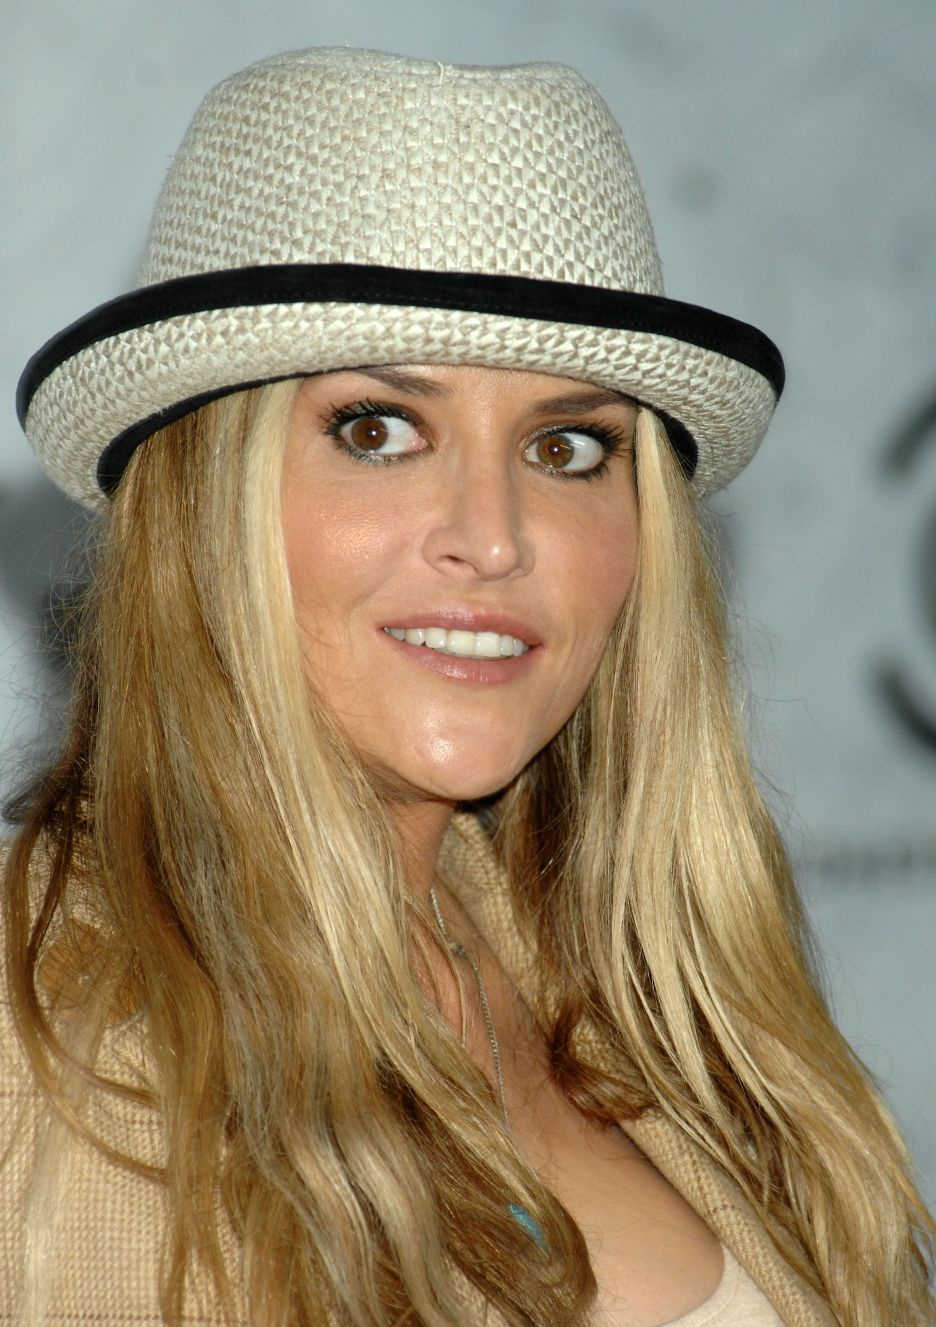 7. Brooke Mueller: Been to Rehab 20 Times